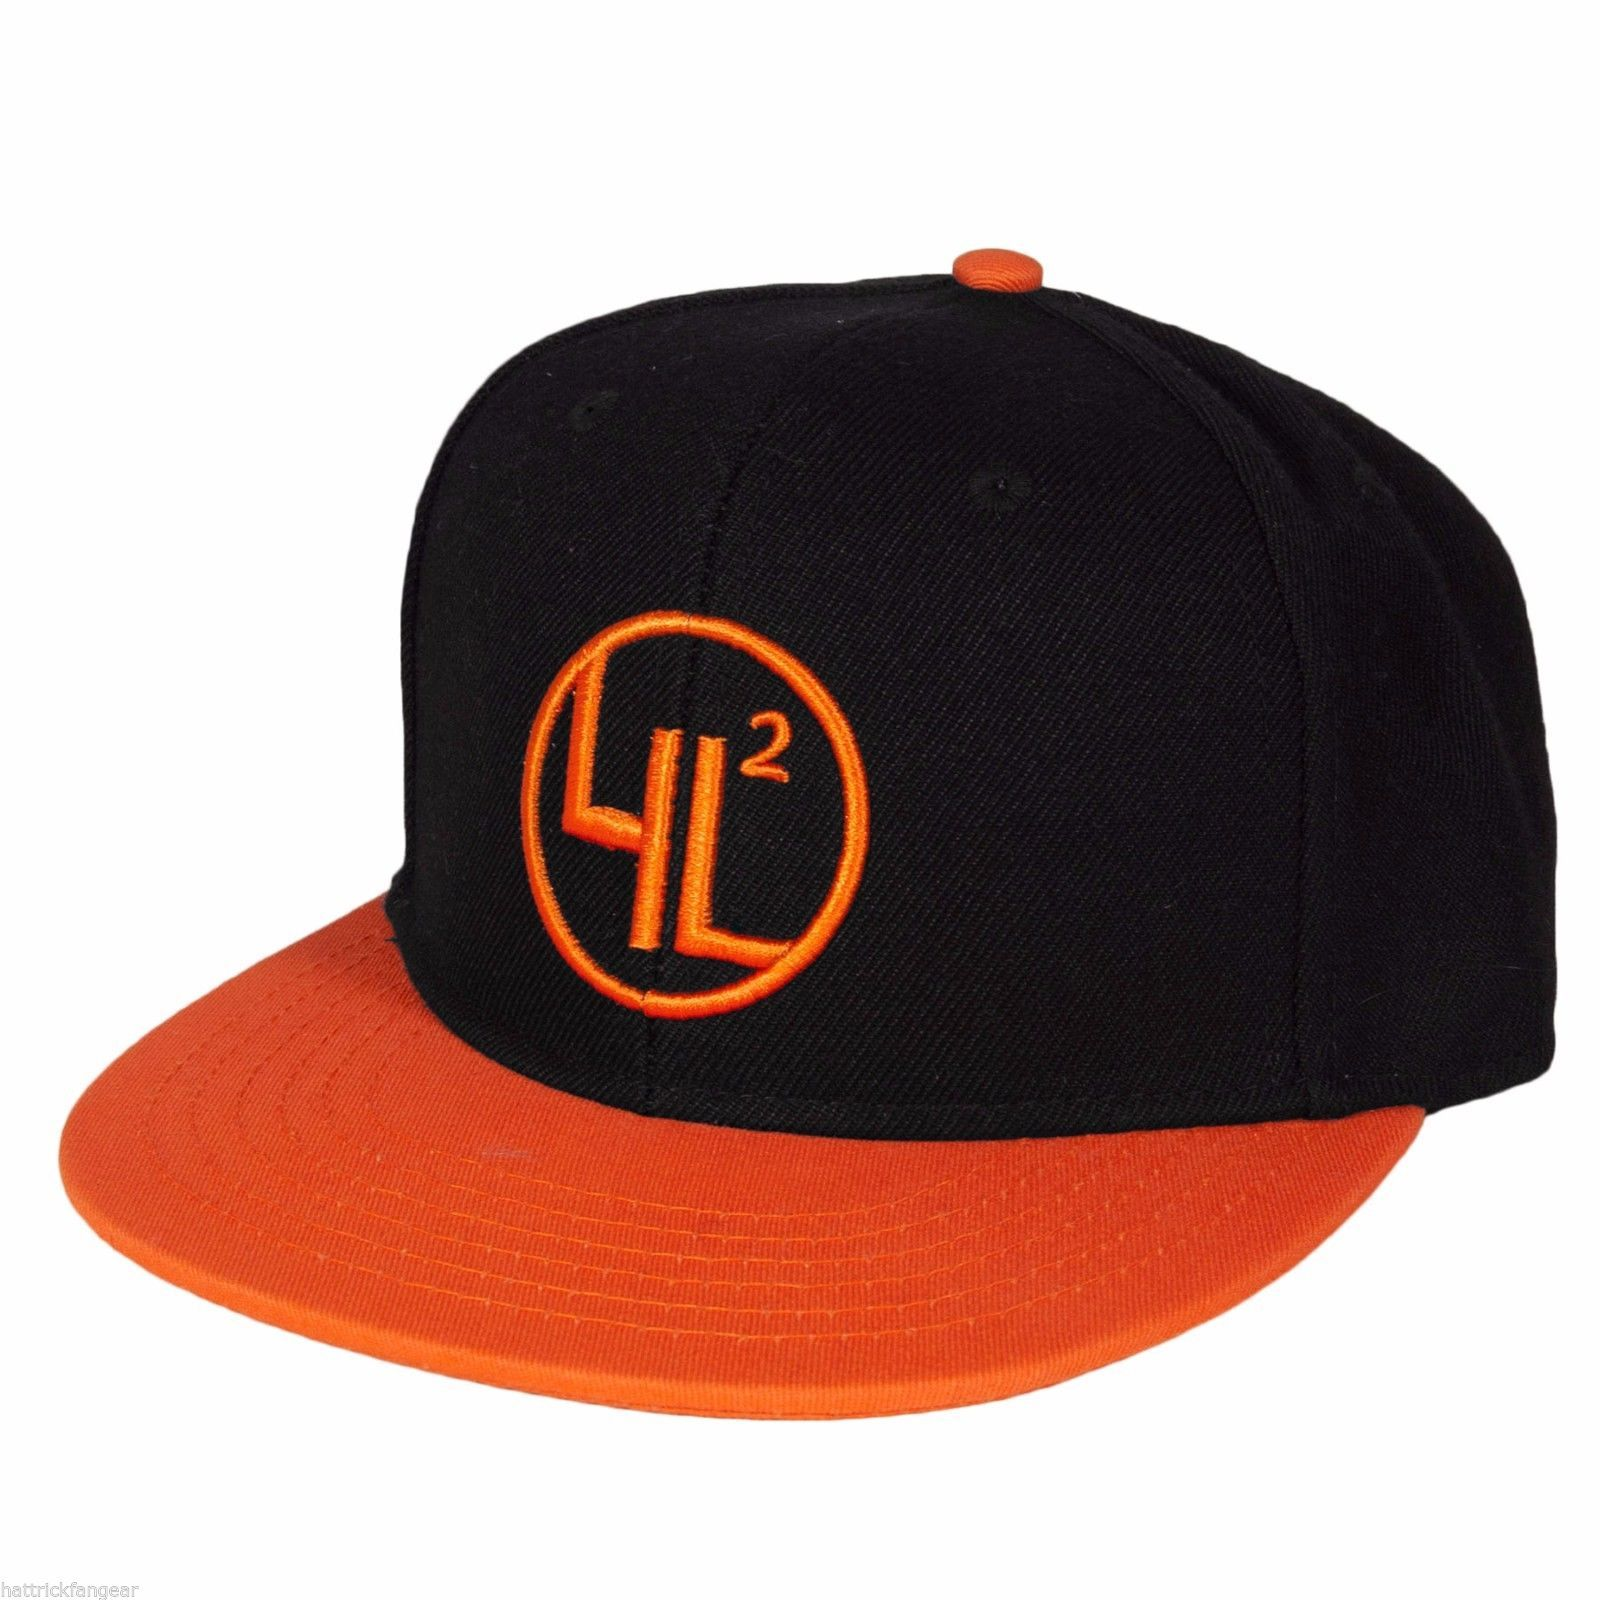 Primary image for SAUCE HOCKEY LIFESTYLE APPAREL 4L2 STRETCH FIT  HOCKEY CAP/HAT - L/XL